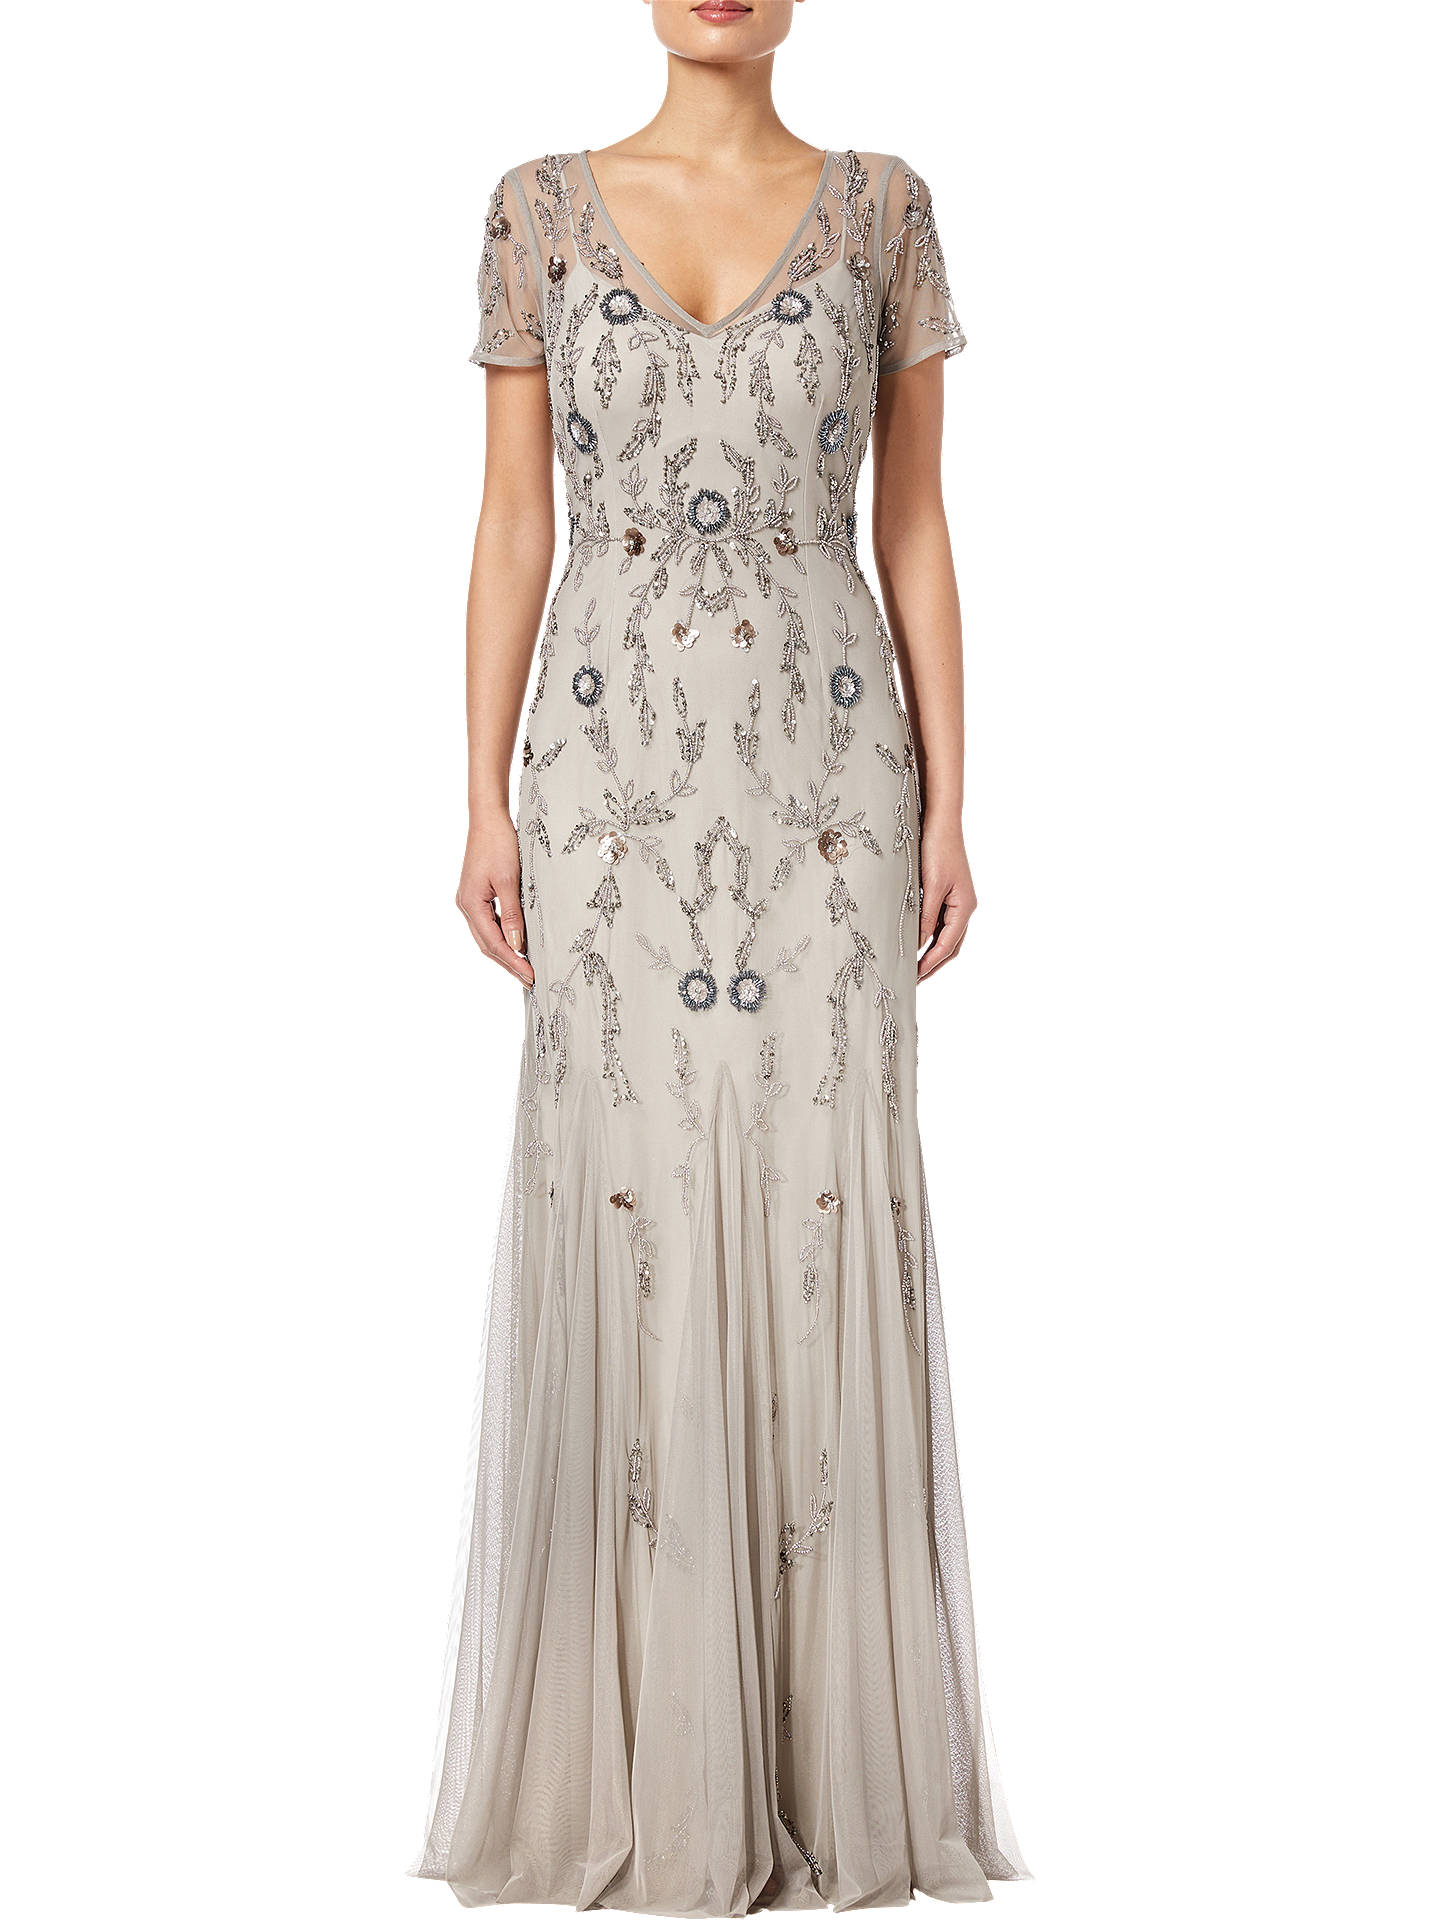 Buy Adrianna Papell Beaded Long Dress, Platinum Multi, 8 Online at johnlewis.com